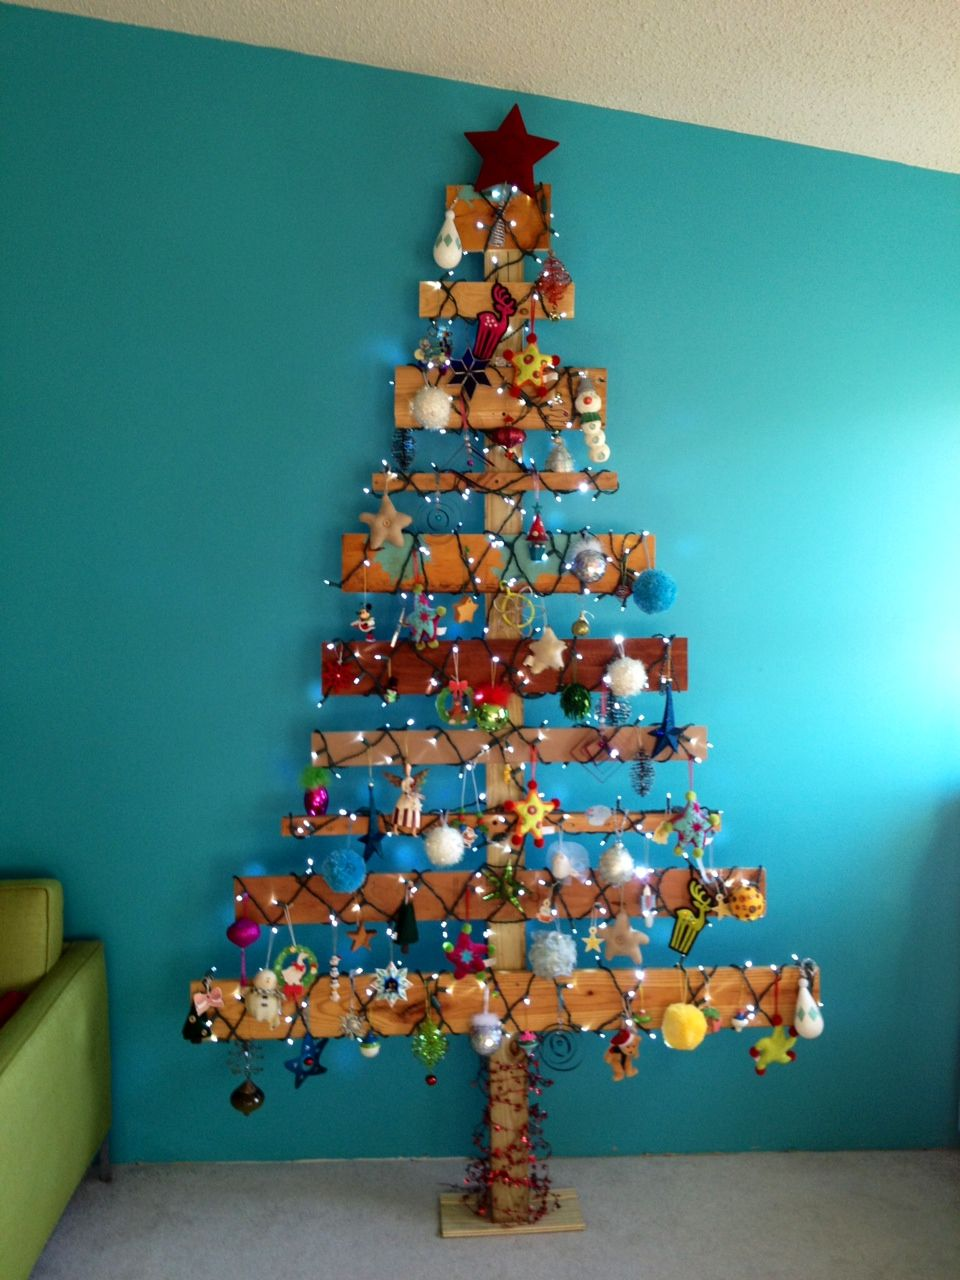 Our Christmas tree. Made from repurposed wood found in our garage. $0